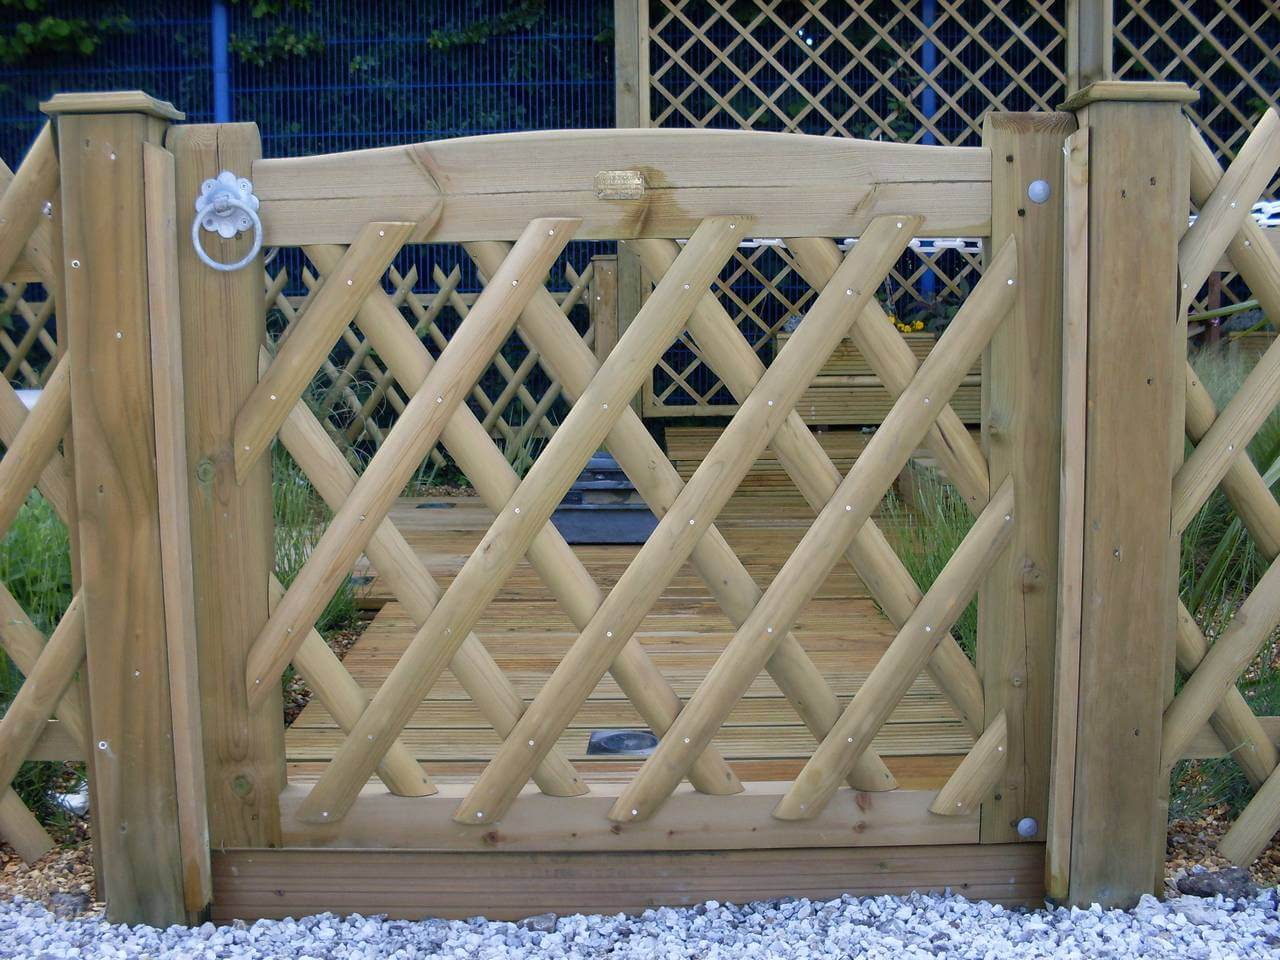 086 High Jaktop Garden Gate 602600